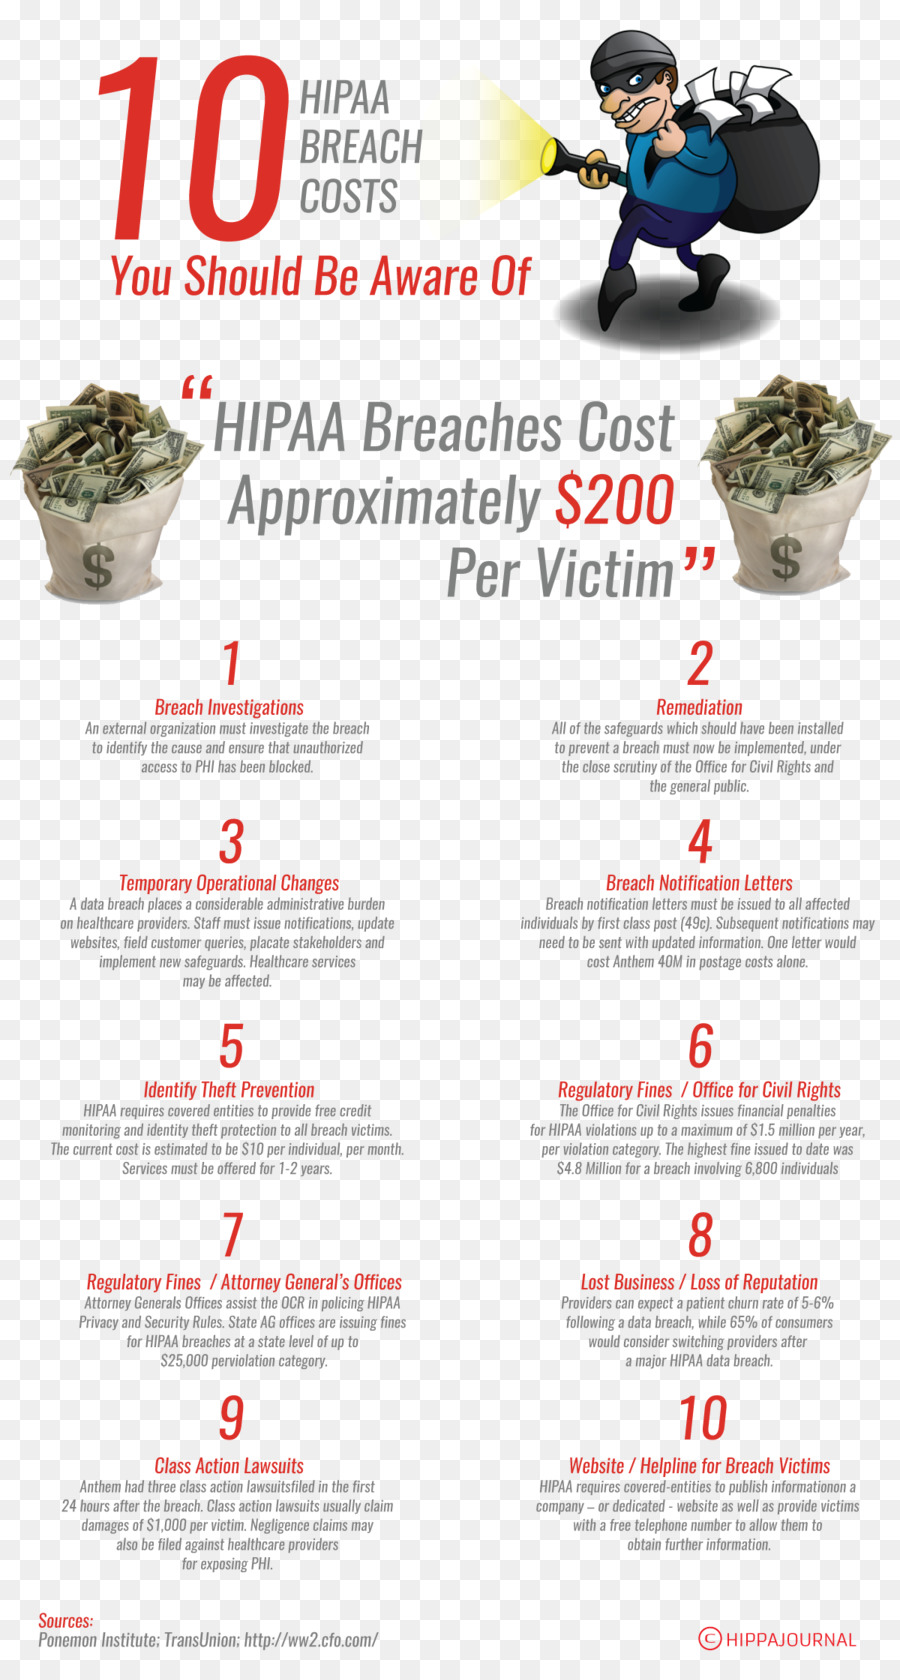 Health Insurance Portability and Accountability Act Security breach notification laws Application for employment Data breach Cover letter - health care ...